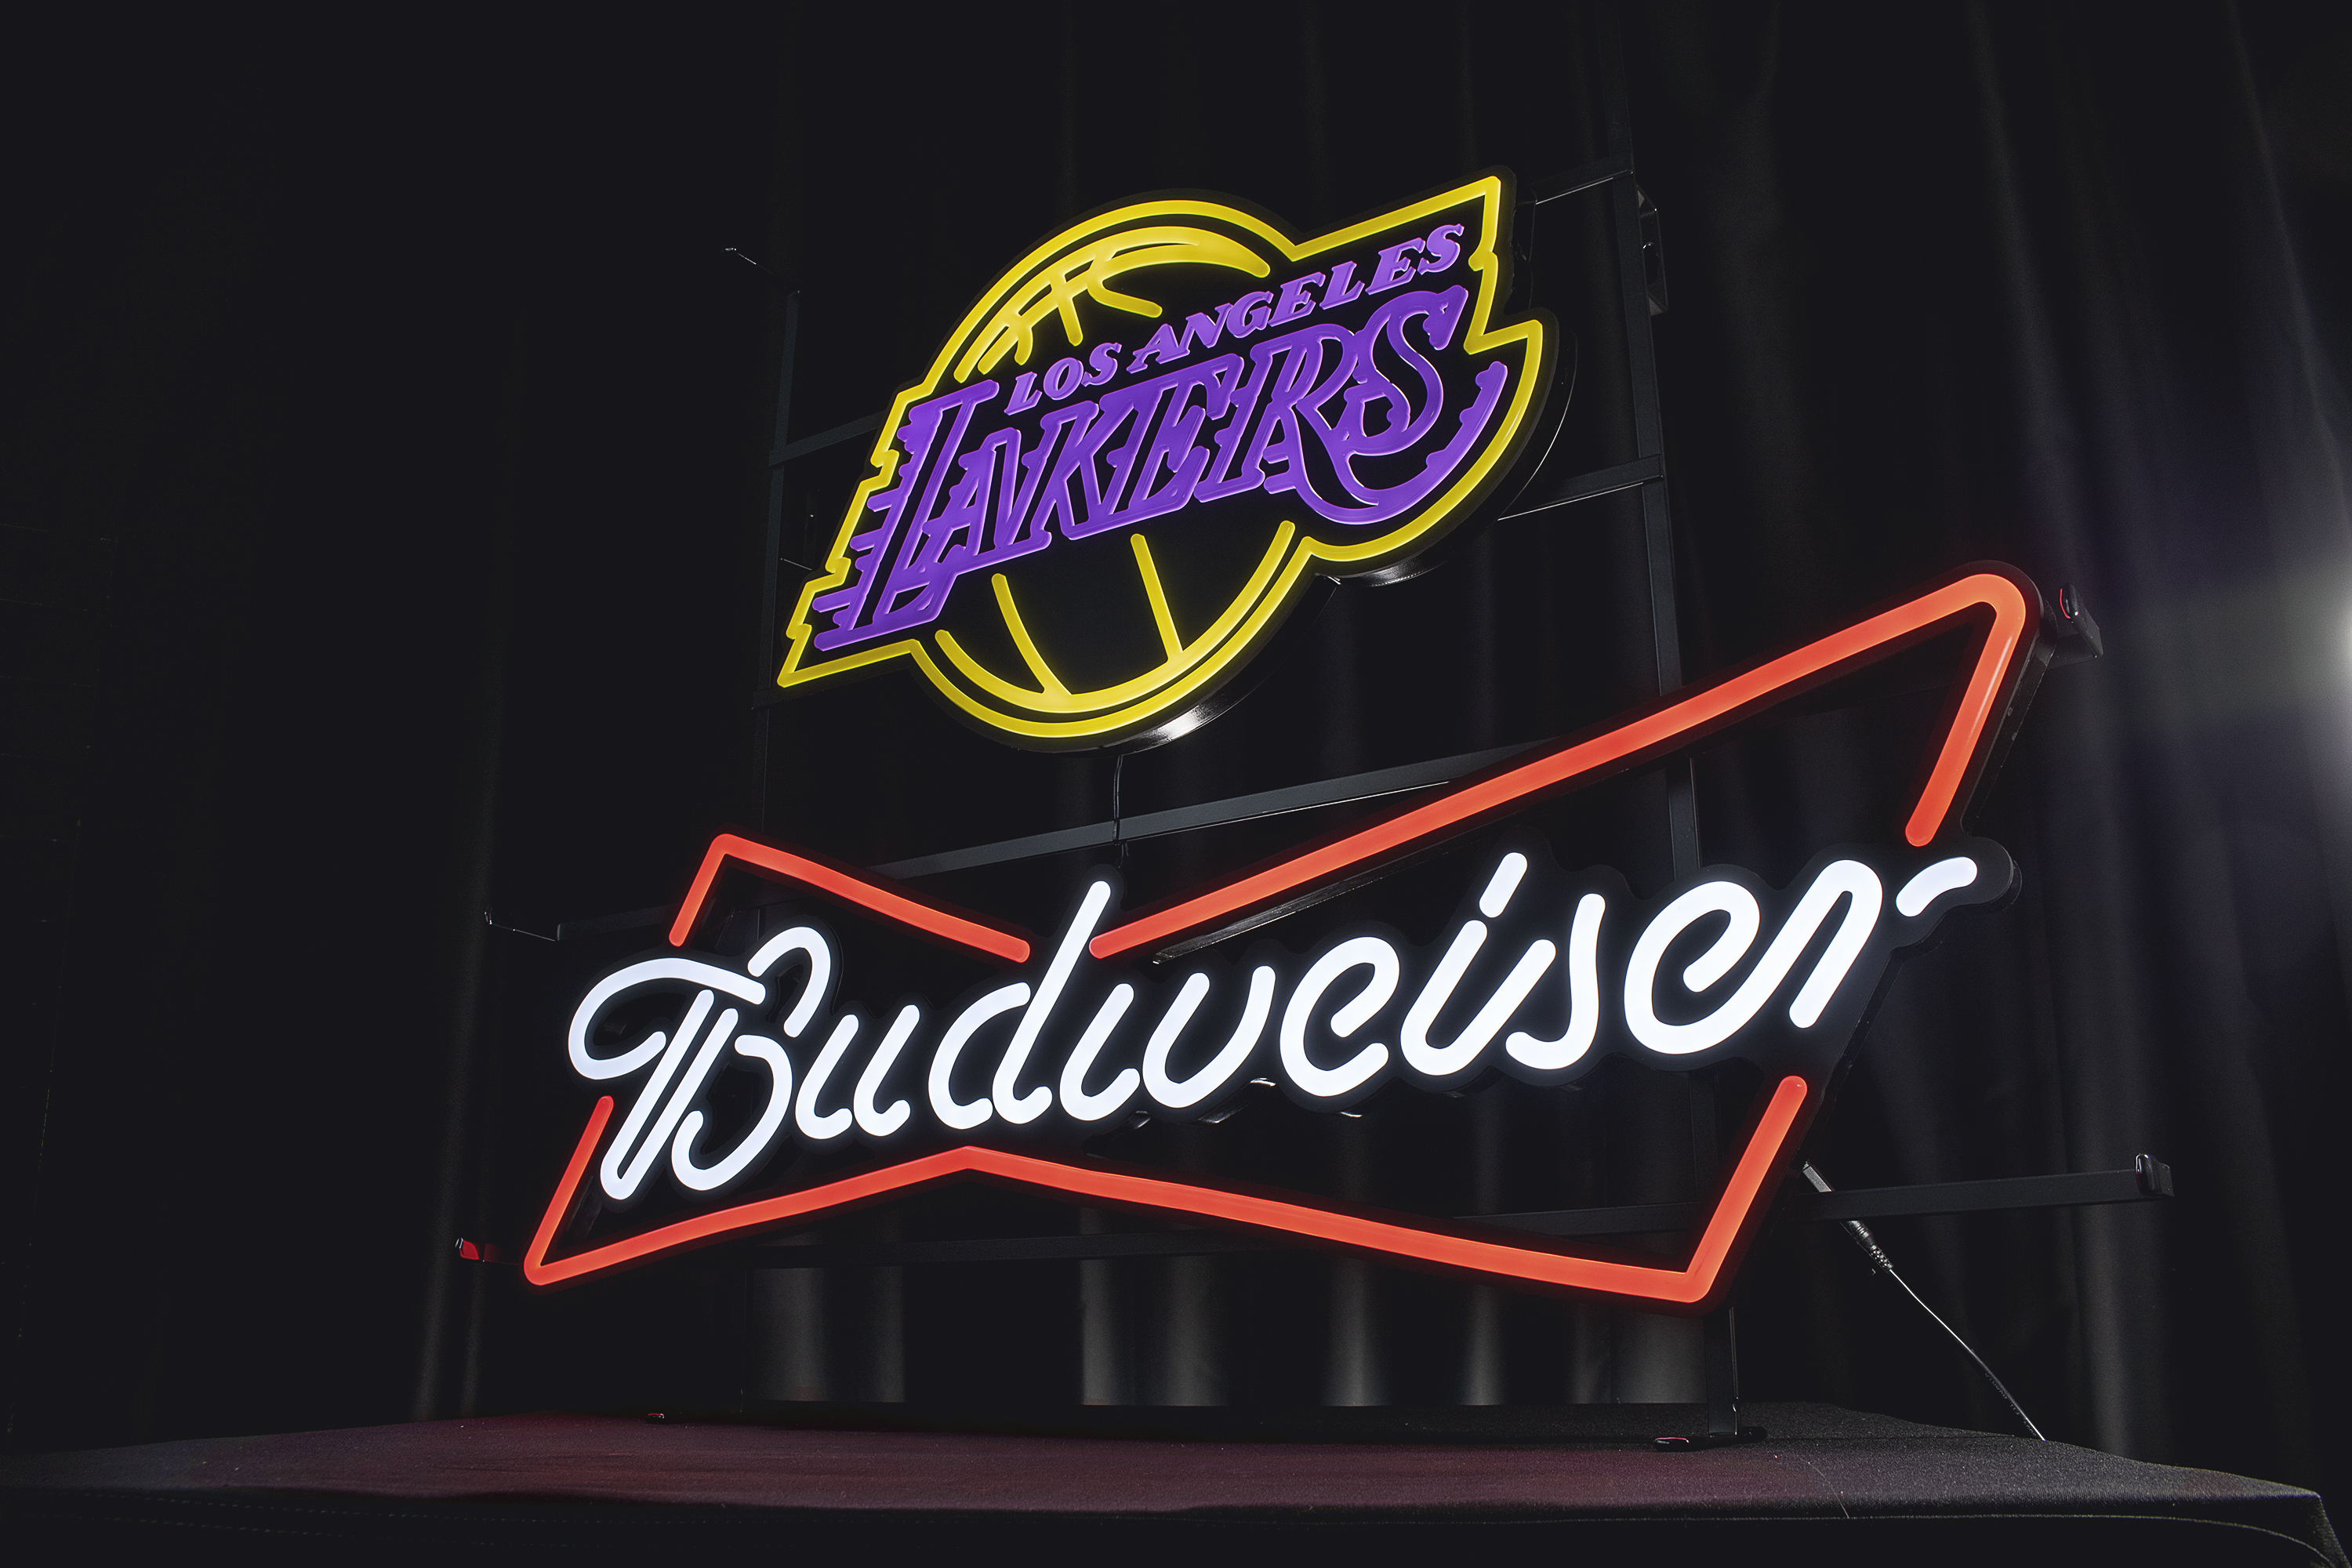 bud lakers wide angle front